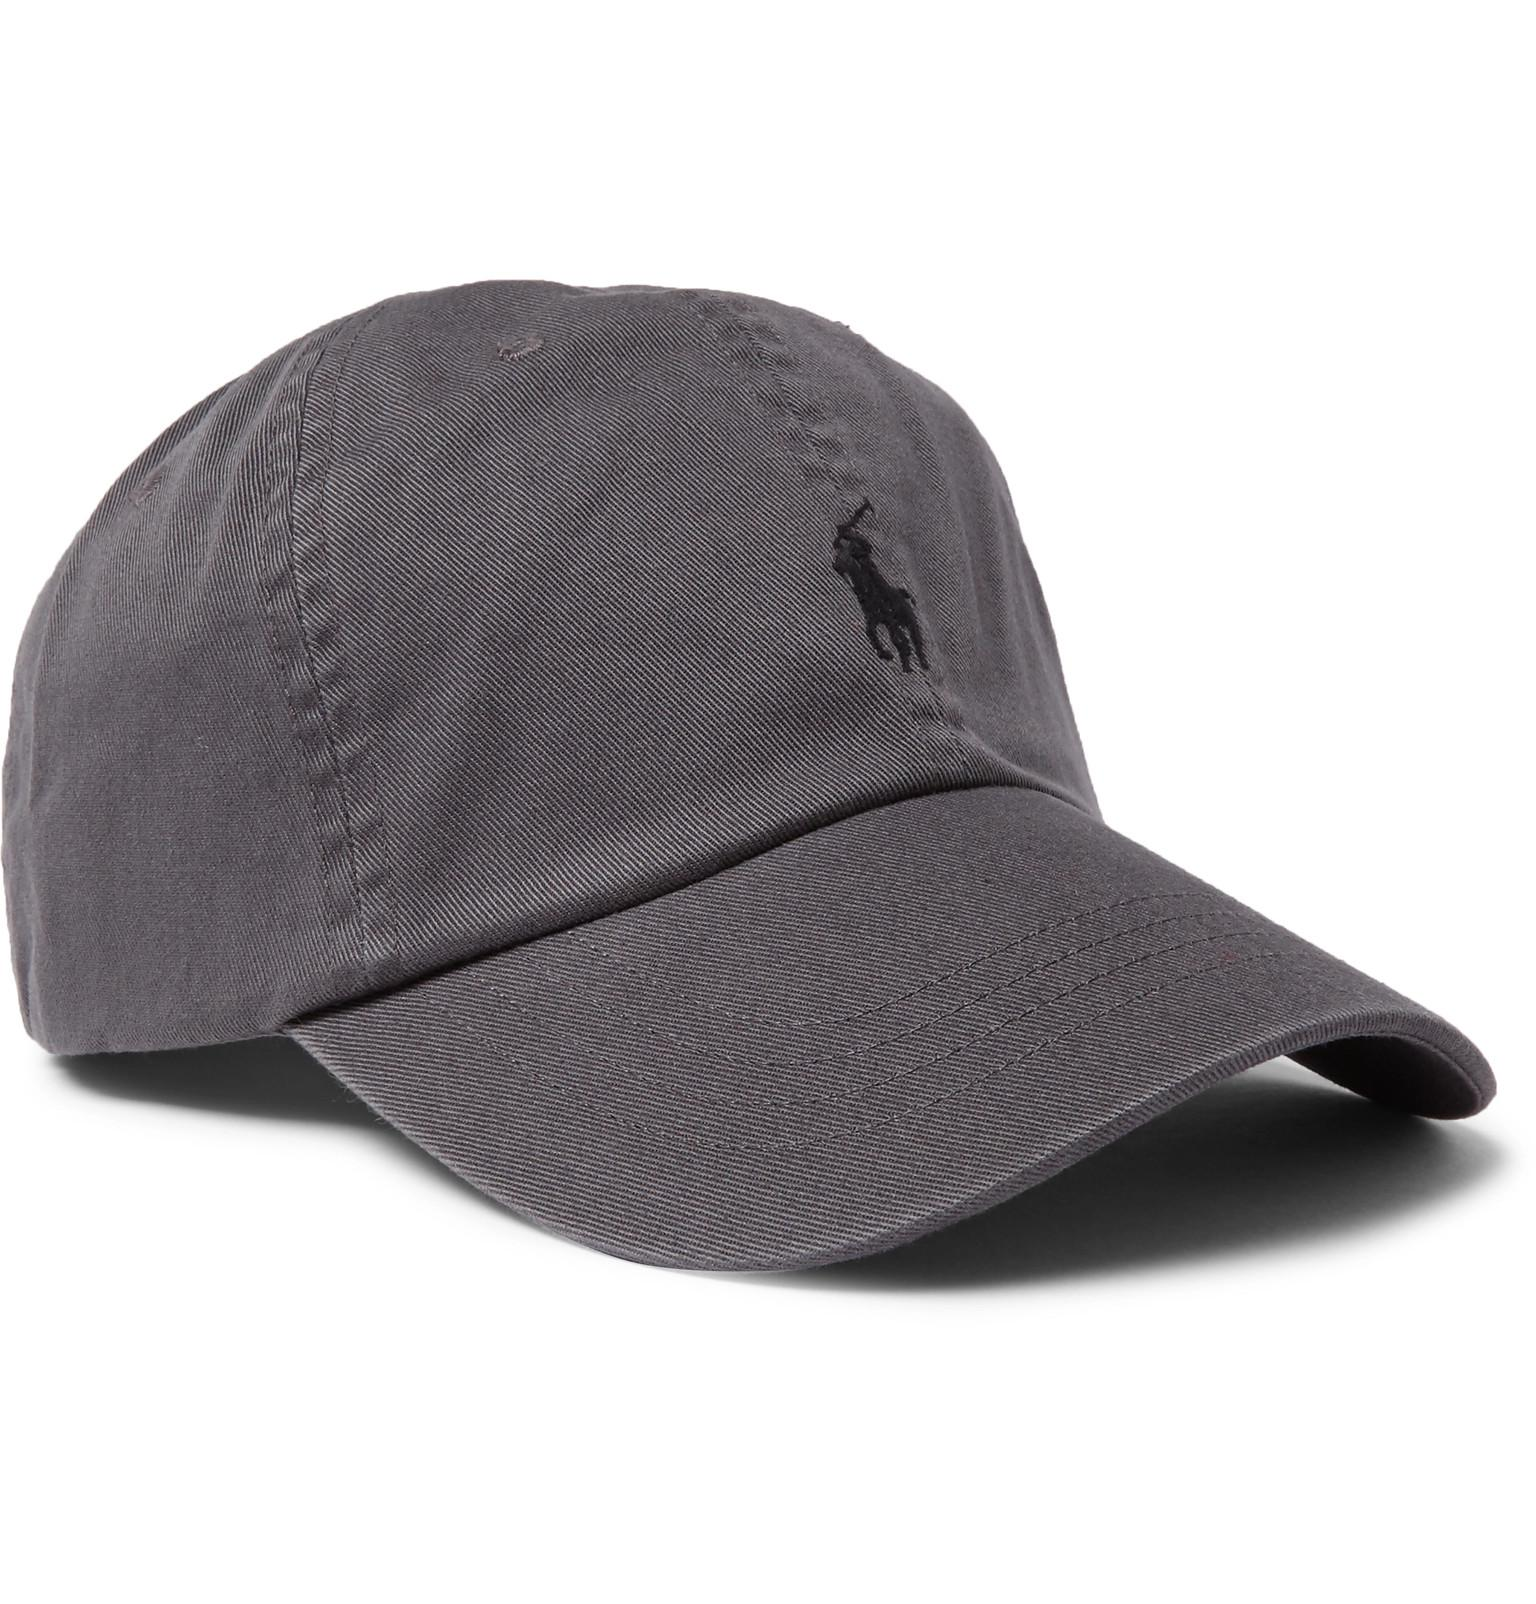 Polo Ralph Lauren. Men s Gray Cotton-twill Baseball Cap.  45 From MR PORTER 80aa4052a9a